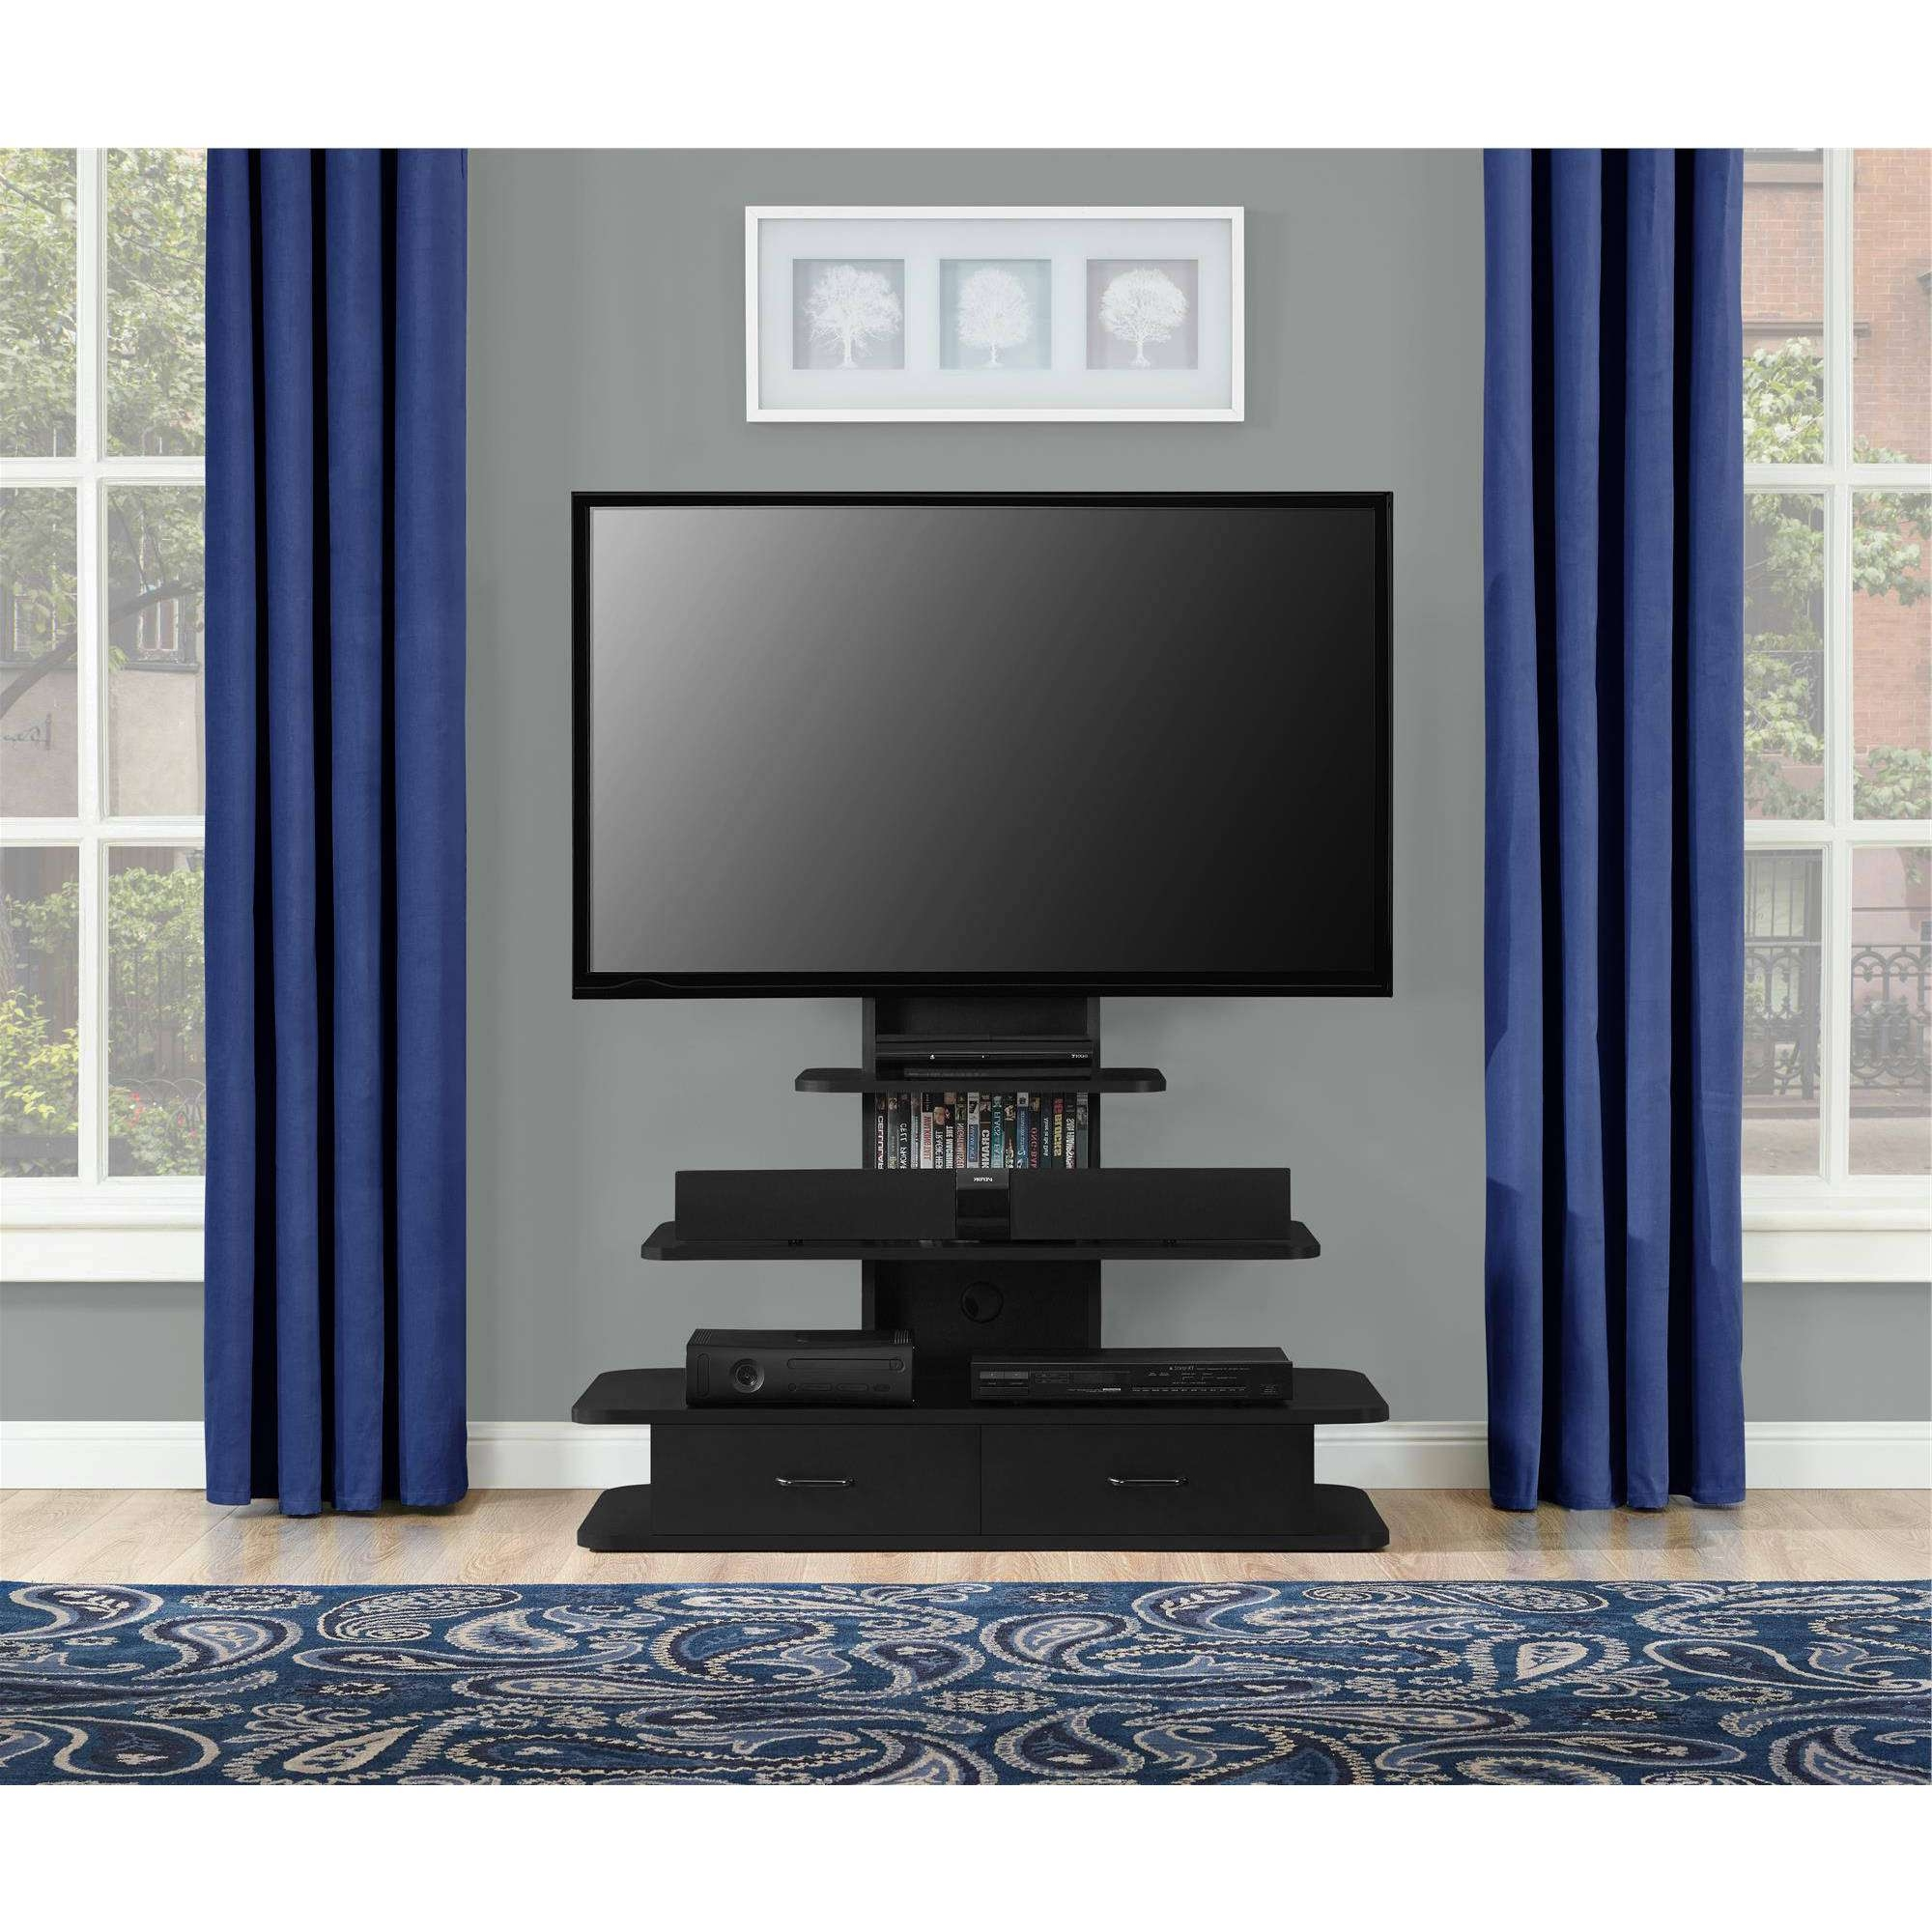 Ameriwood Home Galaxy Xl Tv Stand With Drawers For Tvs Up To 70 Throughout Tv Stands For 70 Inch Tvs (View 5 of 15)